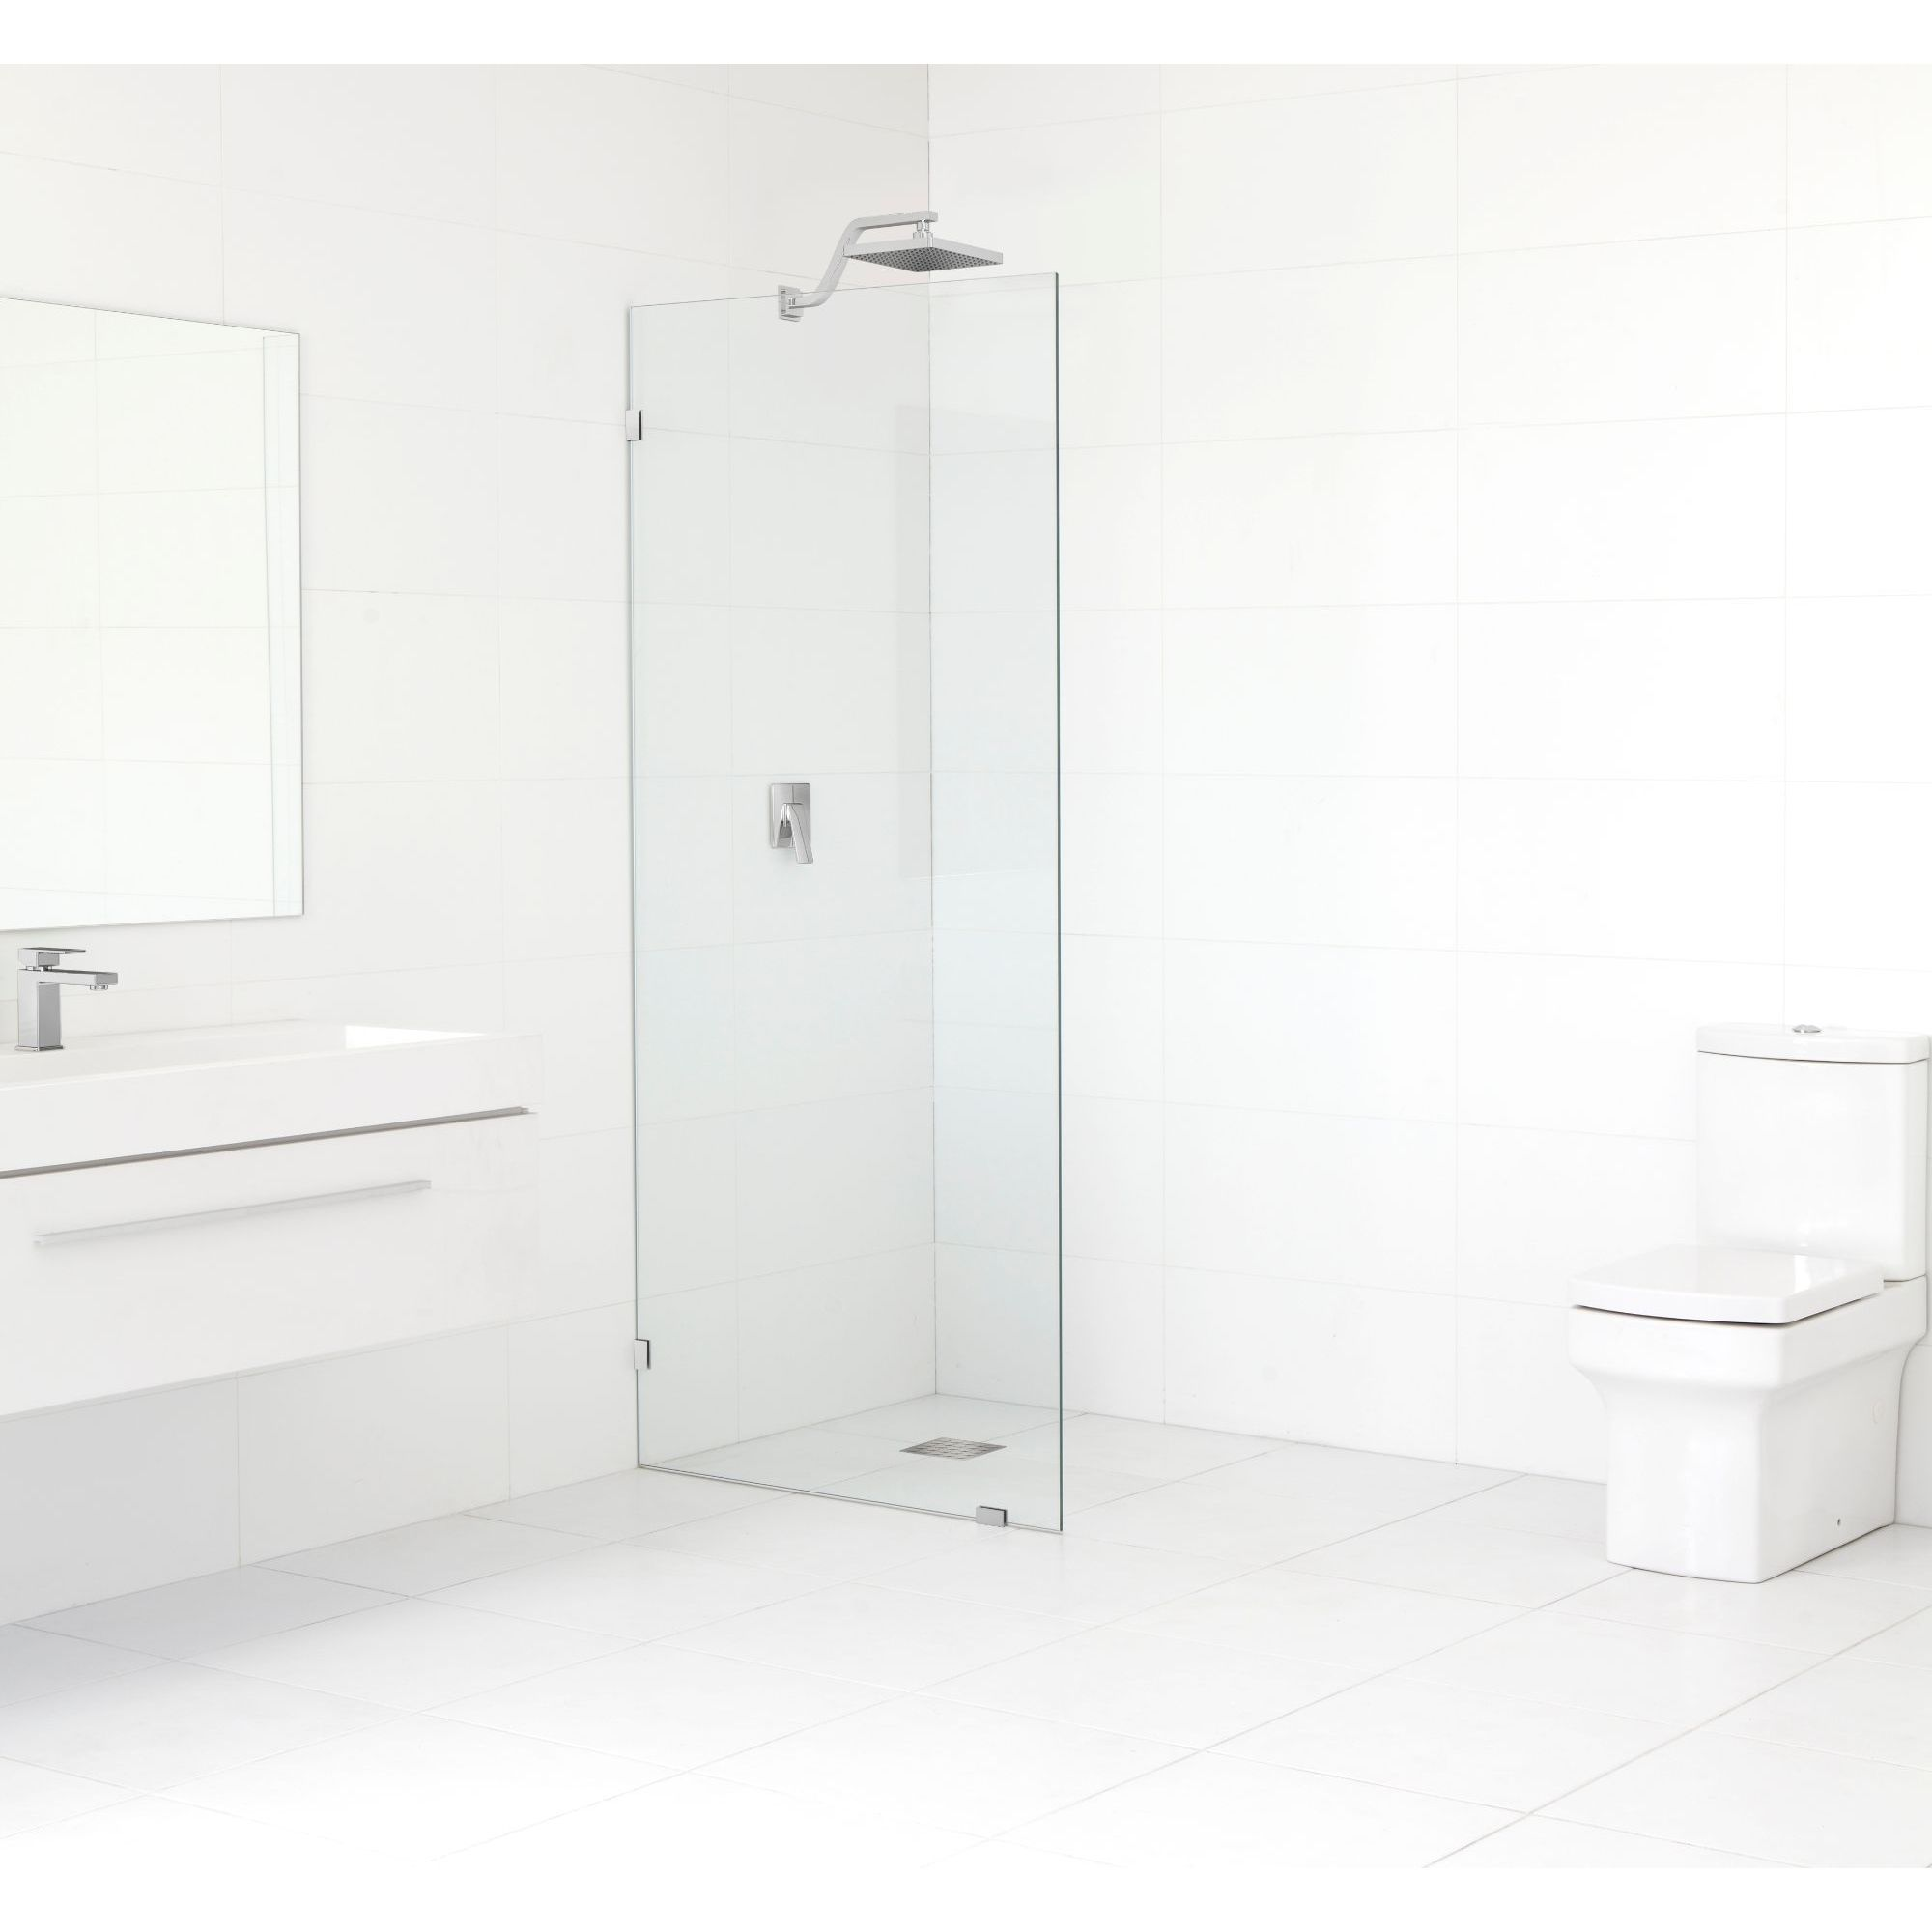 28x28 shower stall | Compare Prices at Nextag